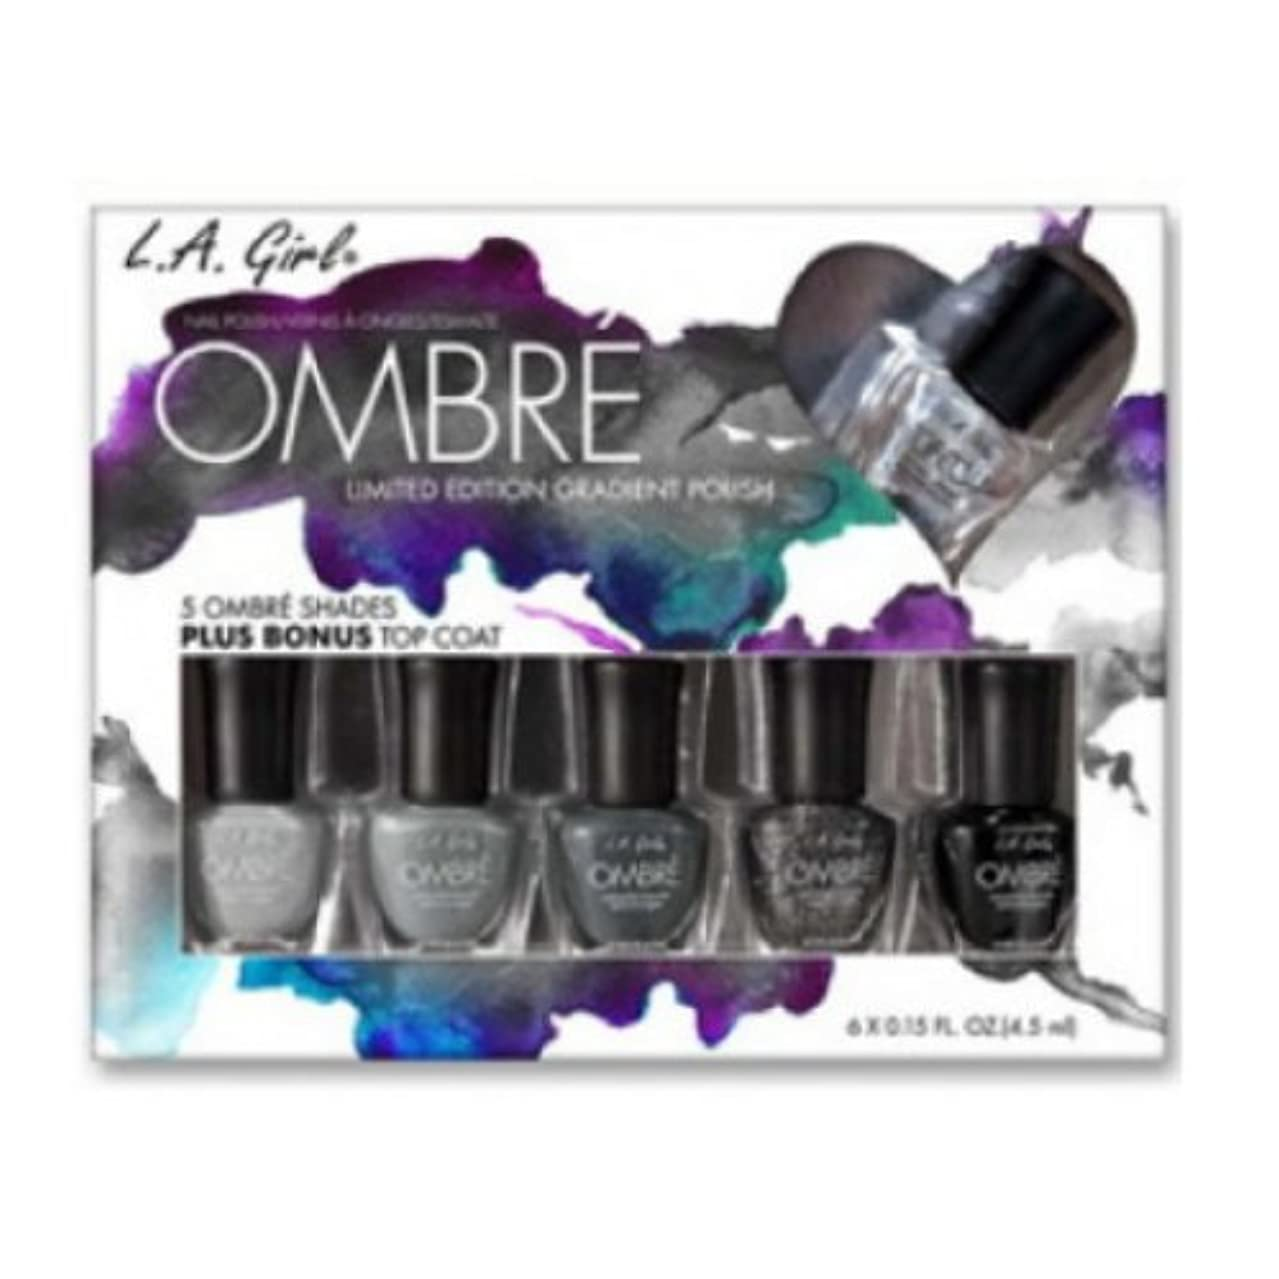 ルネッサンス物理的にシェフ(6 Pack) L.A. GIRL Ombre Limited Edition Gradient Polish Set - Midnite (並行輸入品)